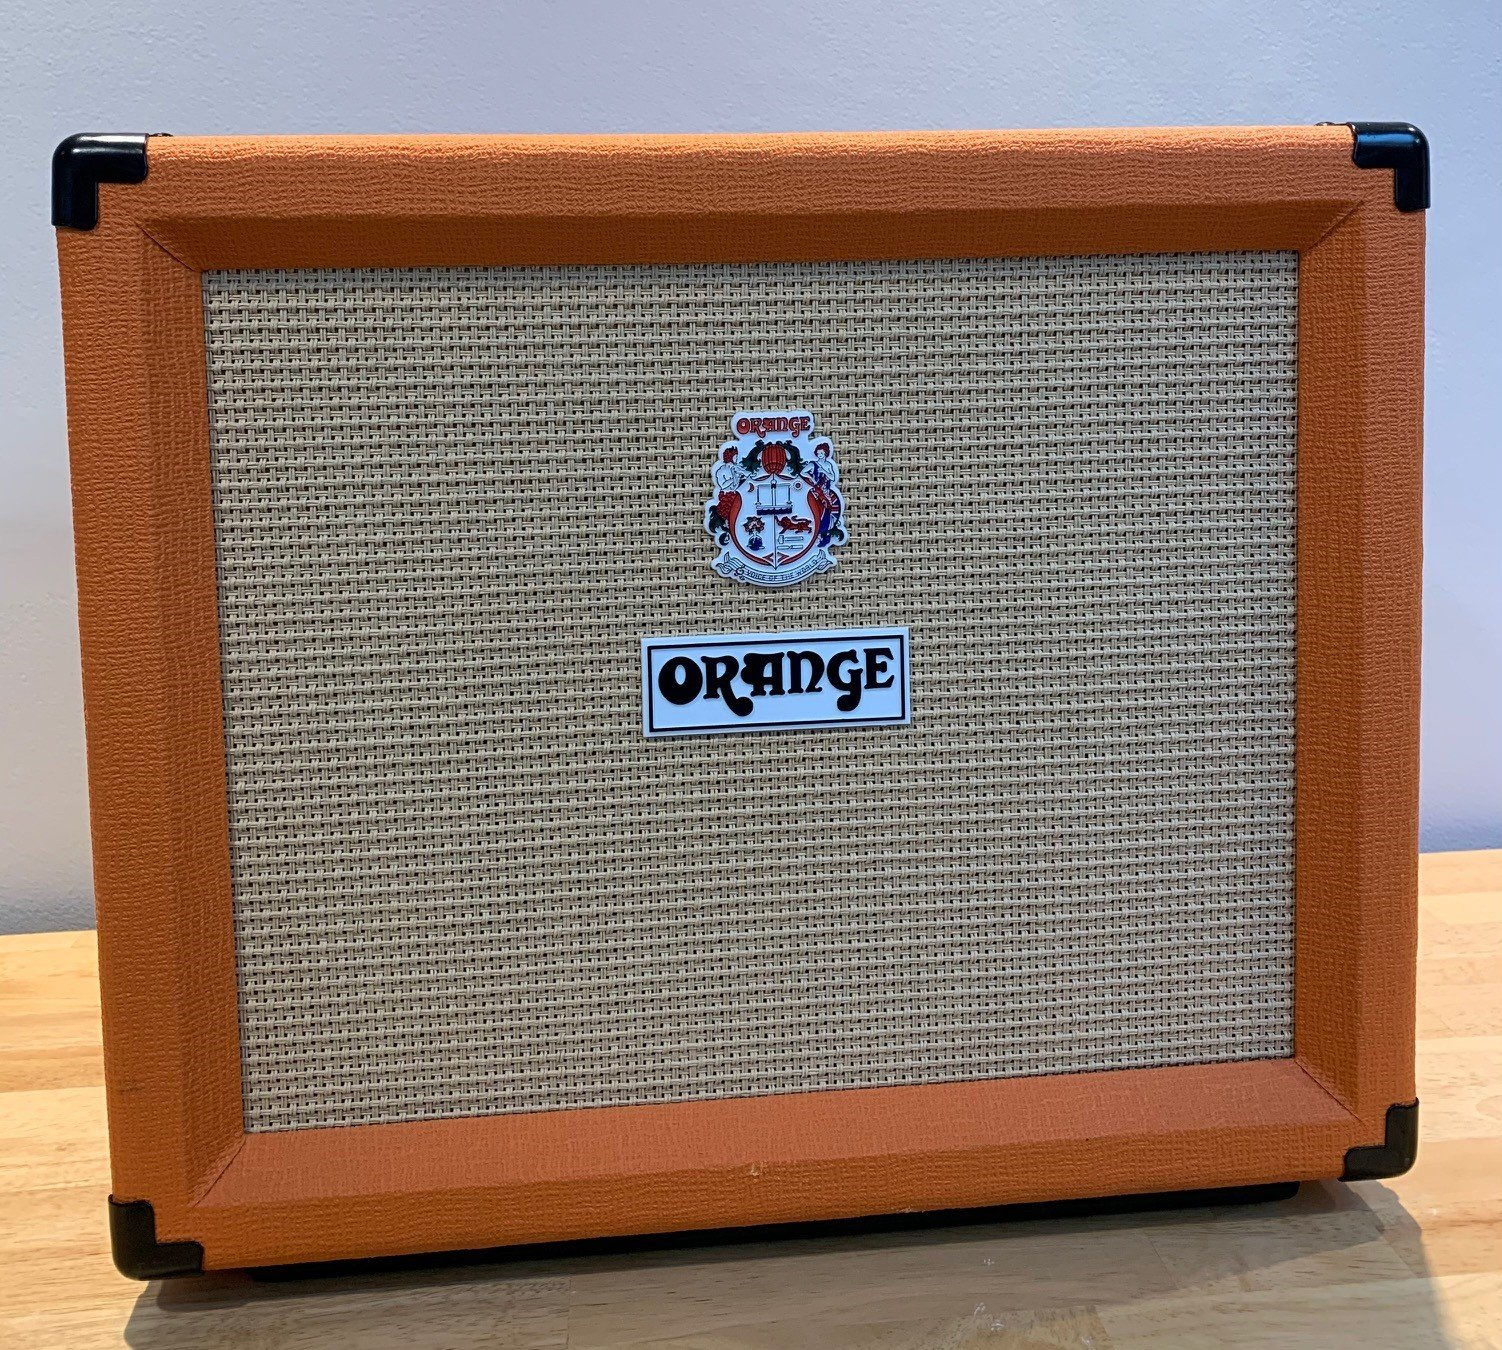 Used Orange Rocker 15 Guitar Amplifier with Footswitch